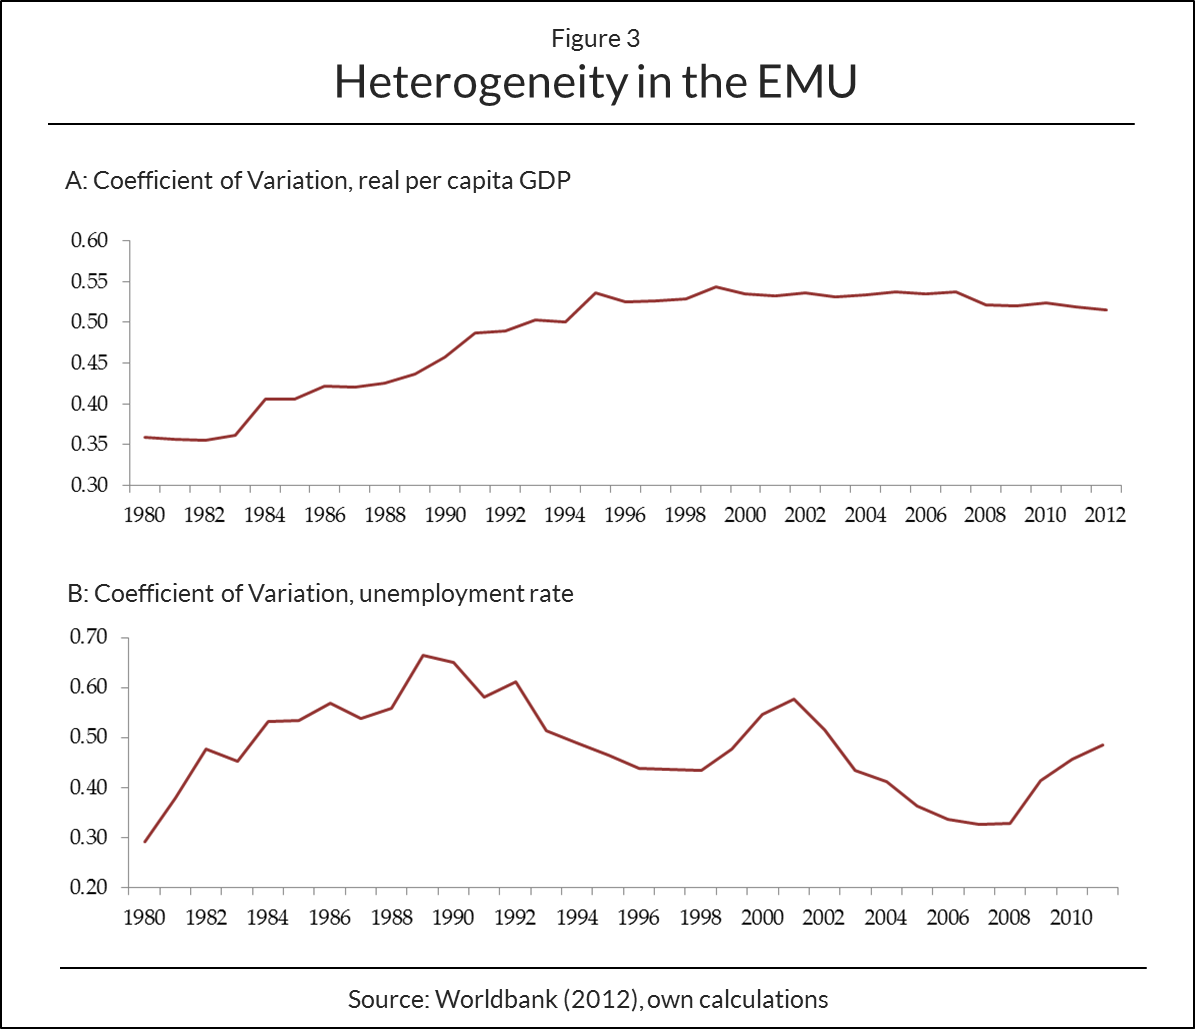 Heterogeneity in the EMU